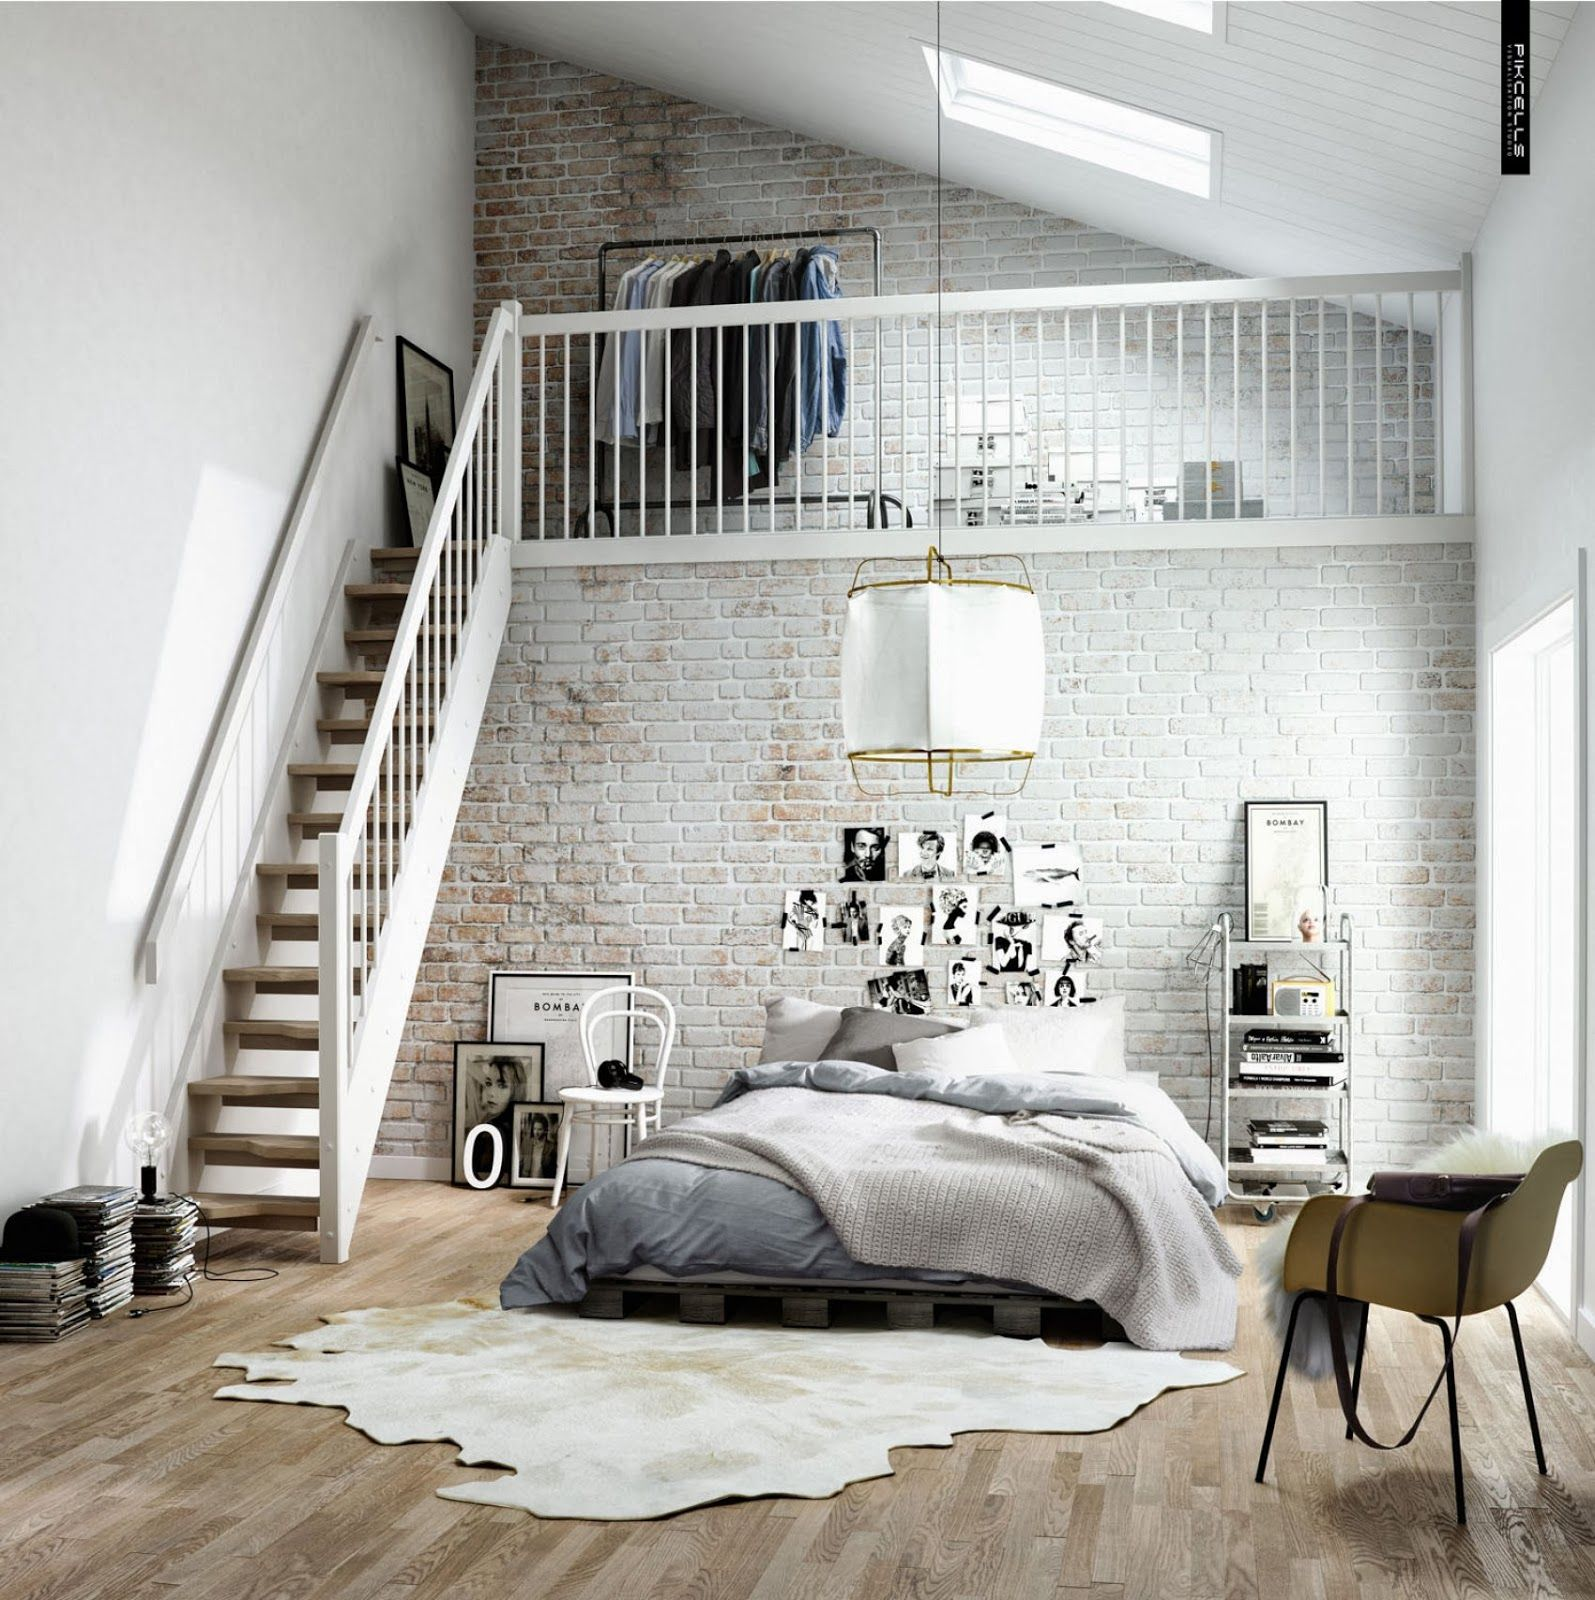 Une chambre avec mezzanine | Lofts, Bedrooms and Mezzanine